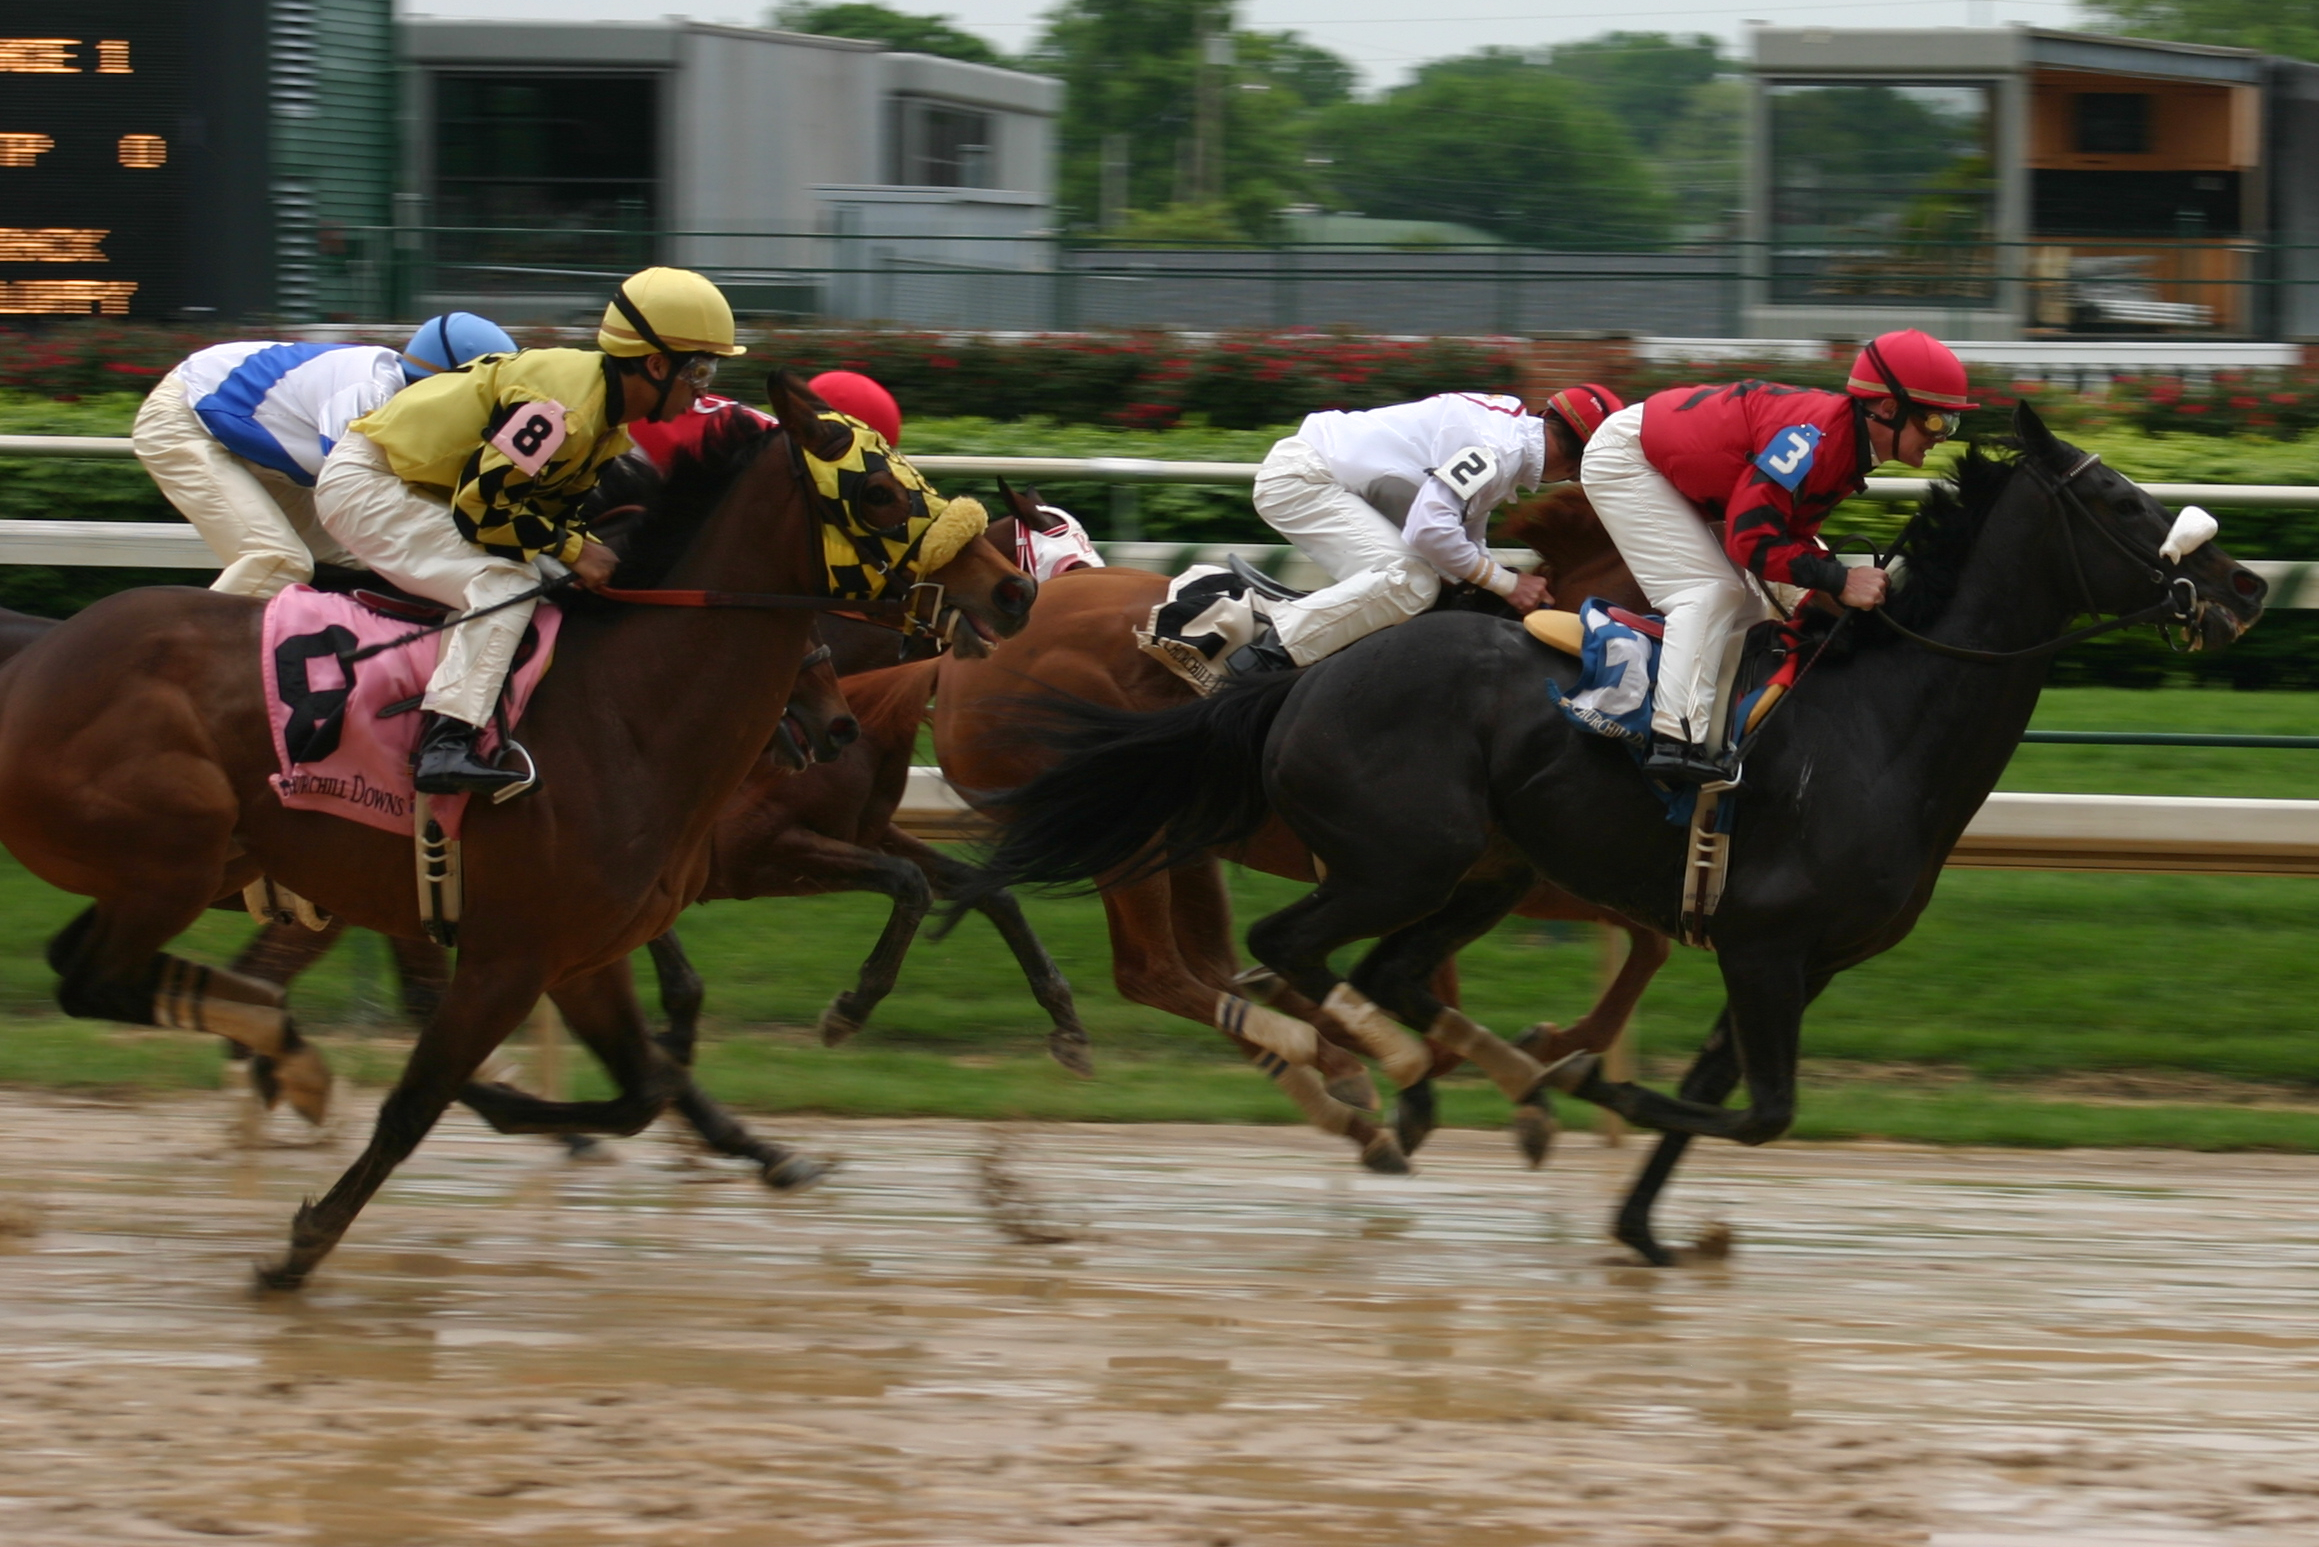 Horse betting wikipedia online ipl betting websites review